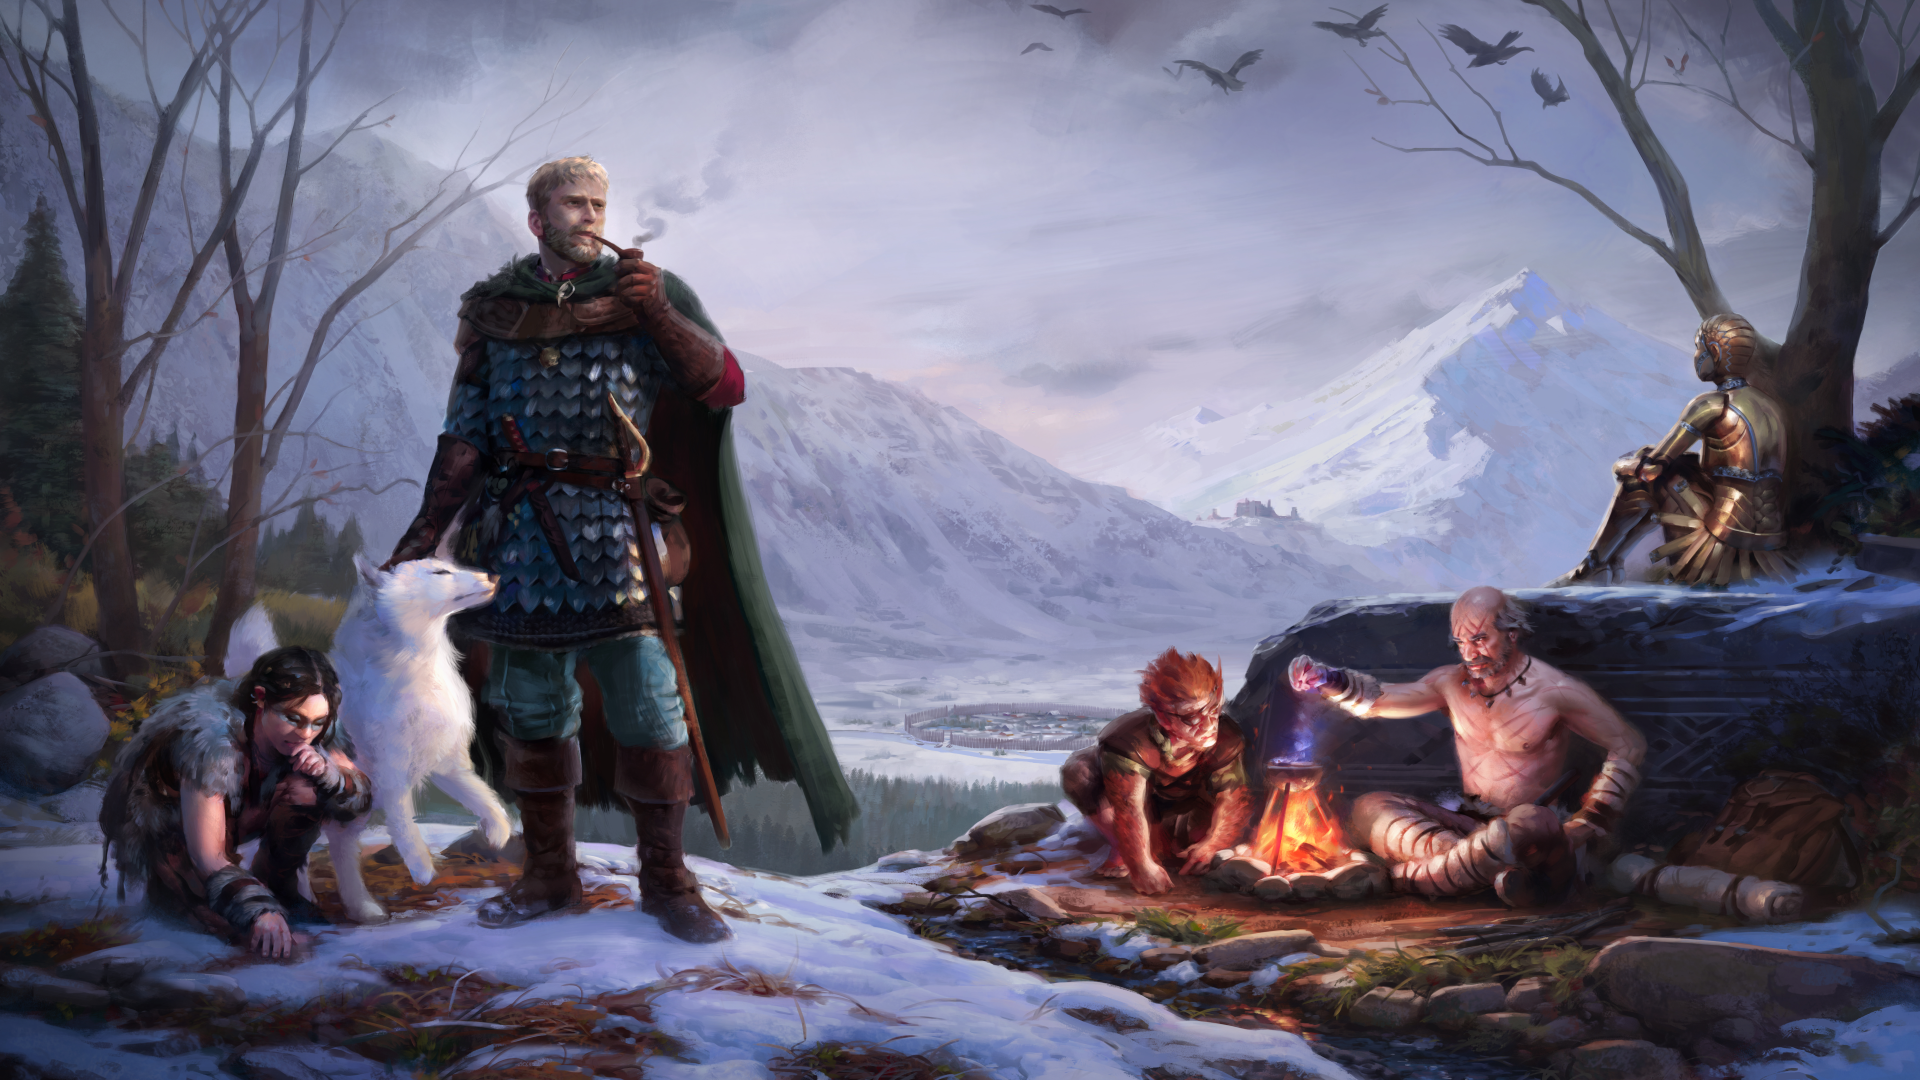 Obsidian on what's next for Pillars of Eternity: 'We own